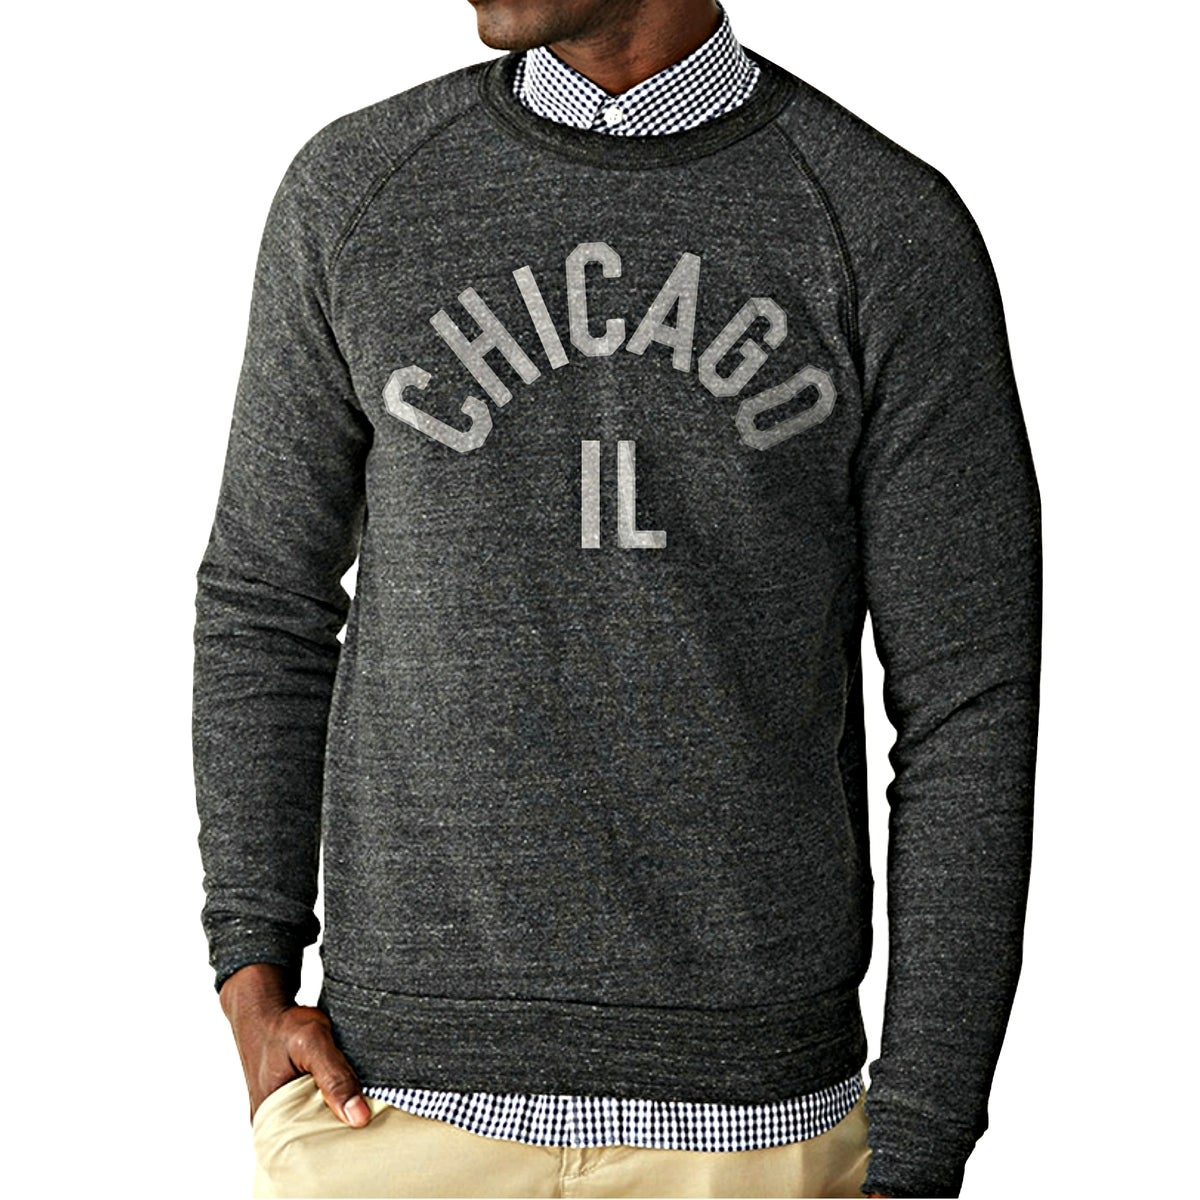 Shop for Chicago Cubs sweatshirts and sweaters for men, women, and kids from Wrigleyville Sports. Continue to celebrate the historic World Series win with a new Chicago Cubs sweatshirt or fleece.